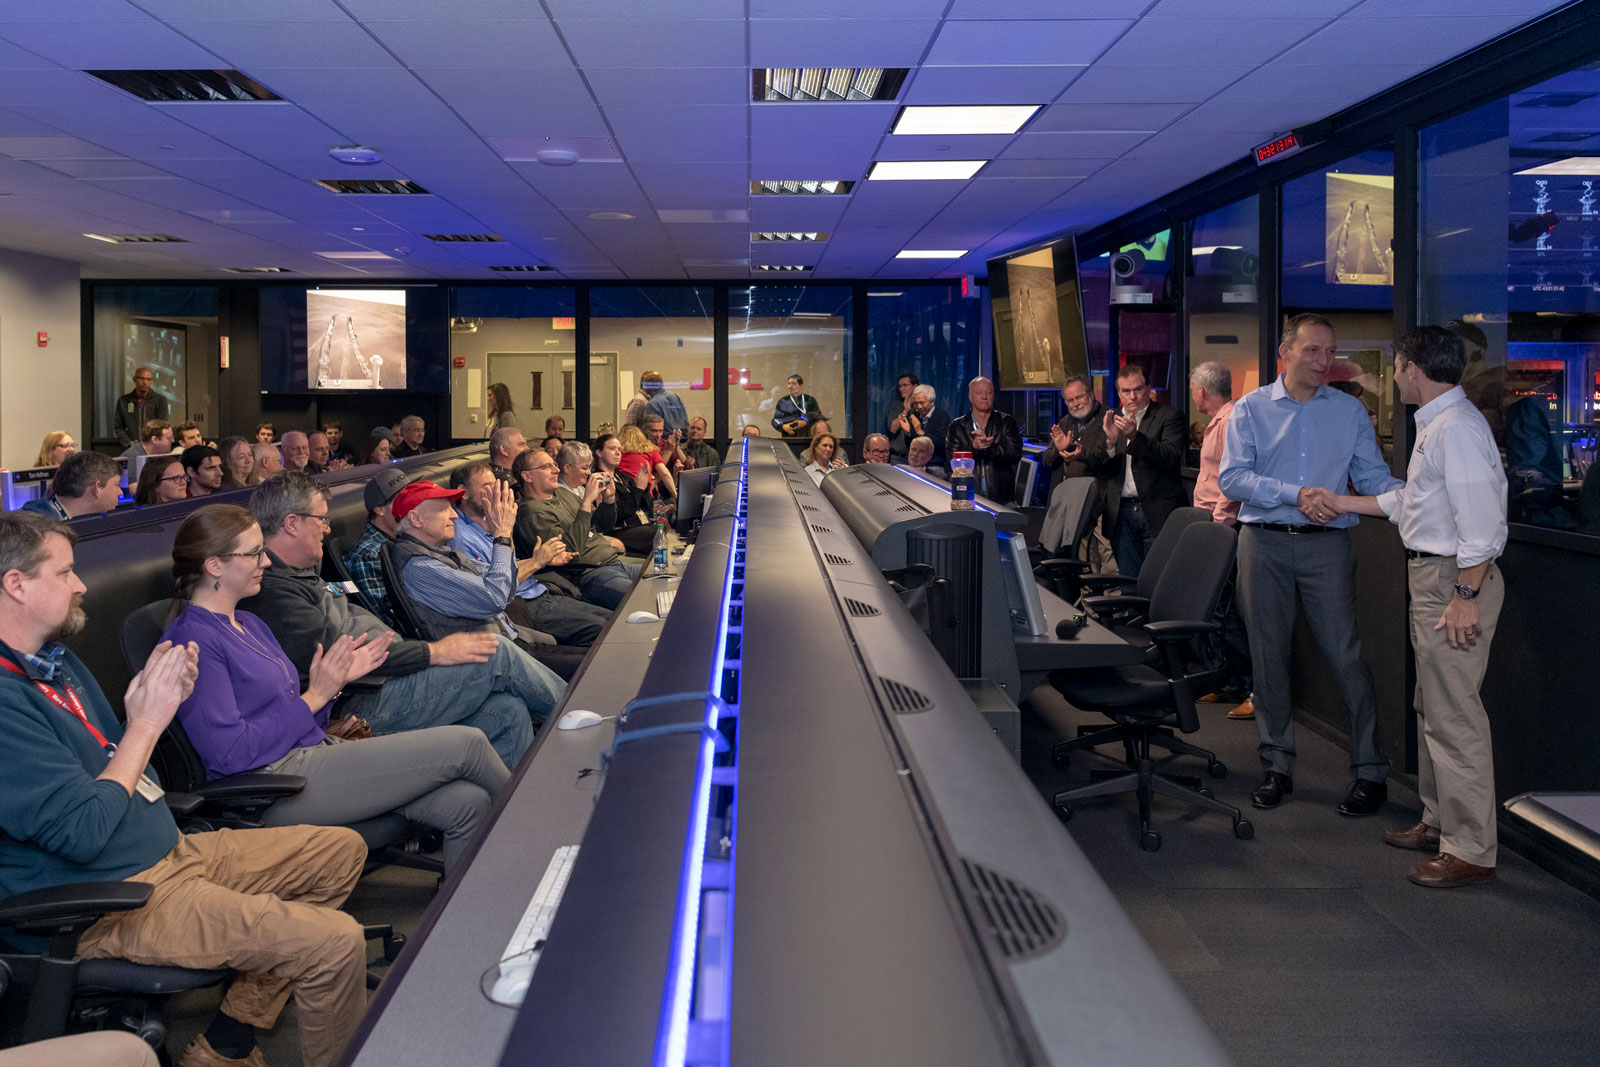 Scientists and engineers who worked on NASA's Opportunity rover give mission leadership a round of applause in Mission Control at NASA's Jet Propulsion Laboratory in Pasadena, California.